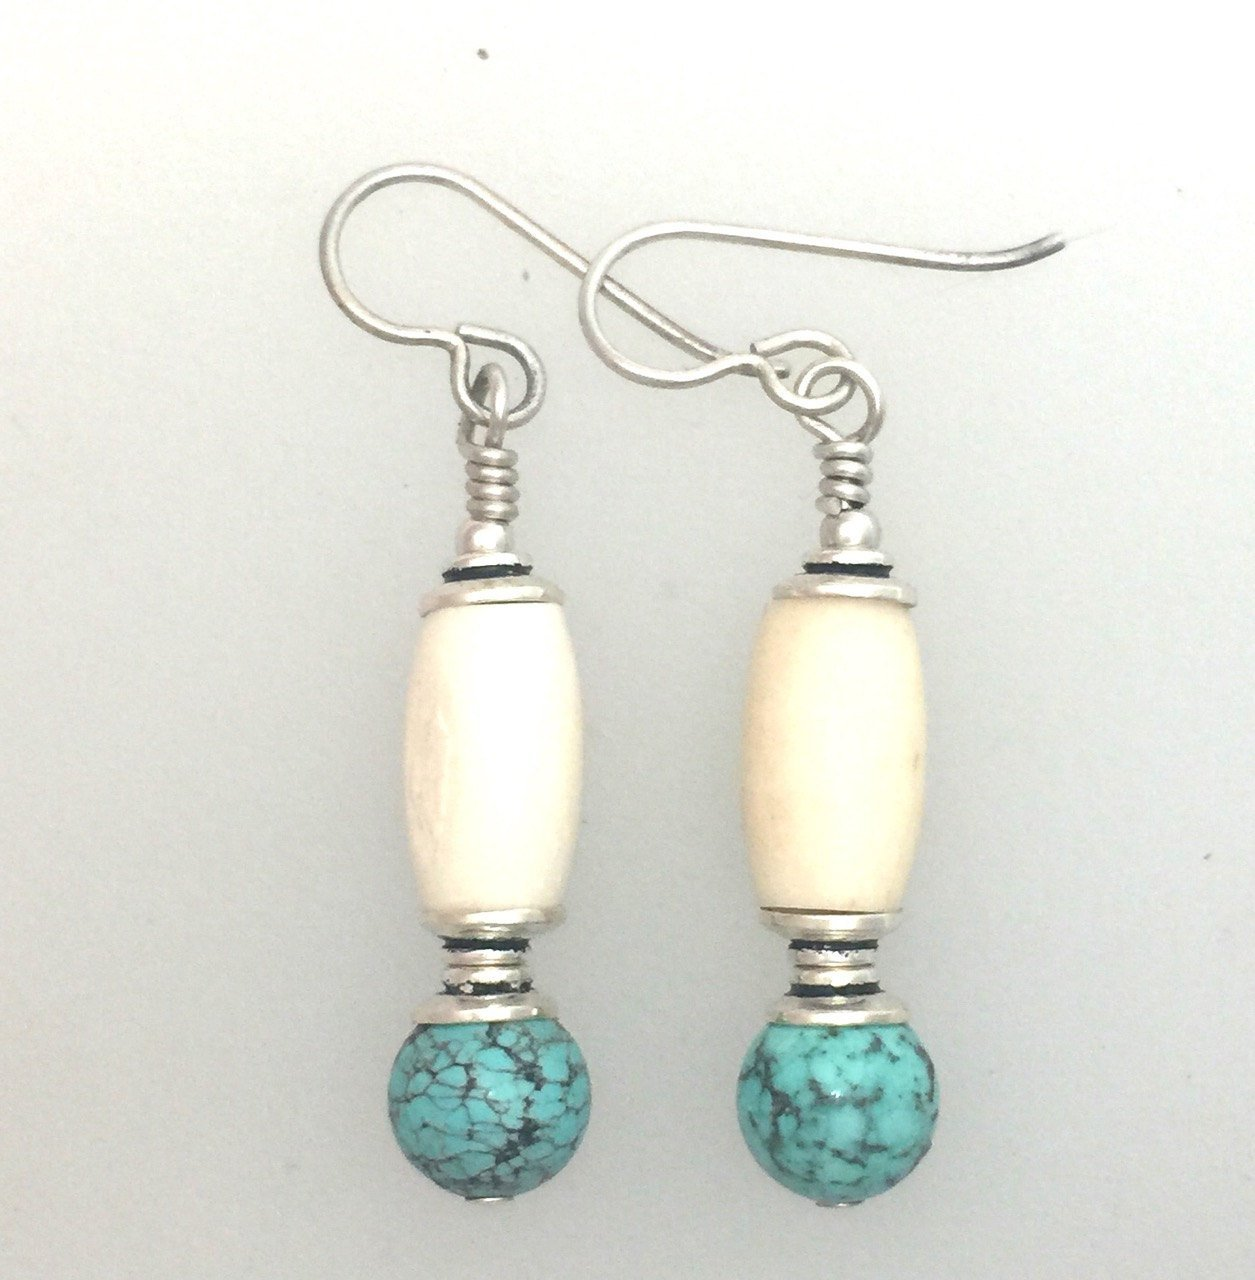 Turquoise and Bone Earrings